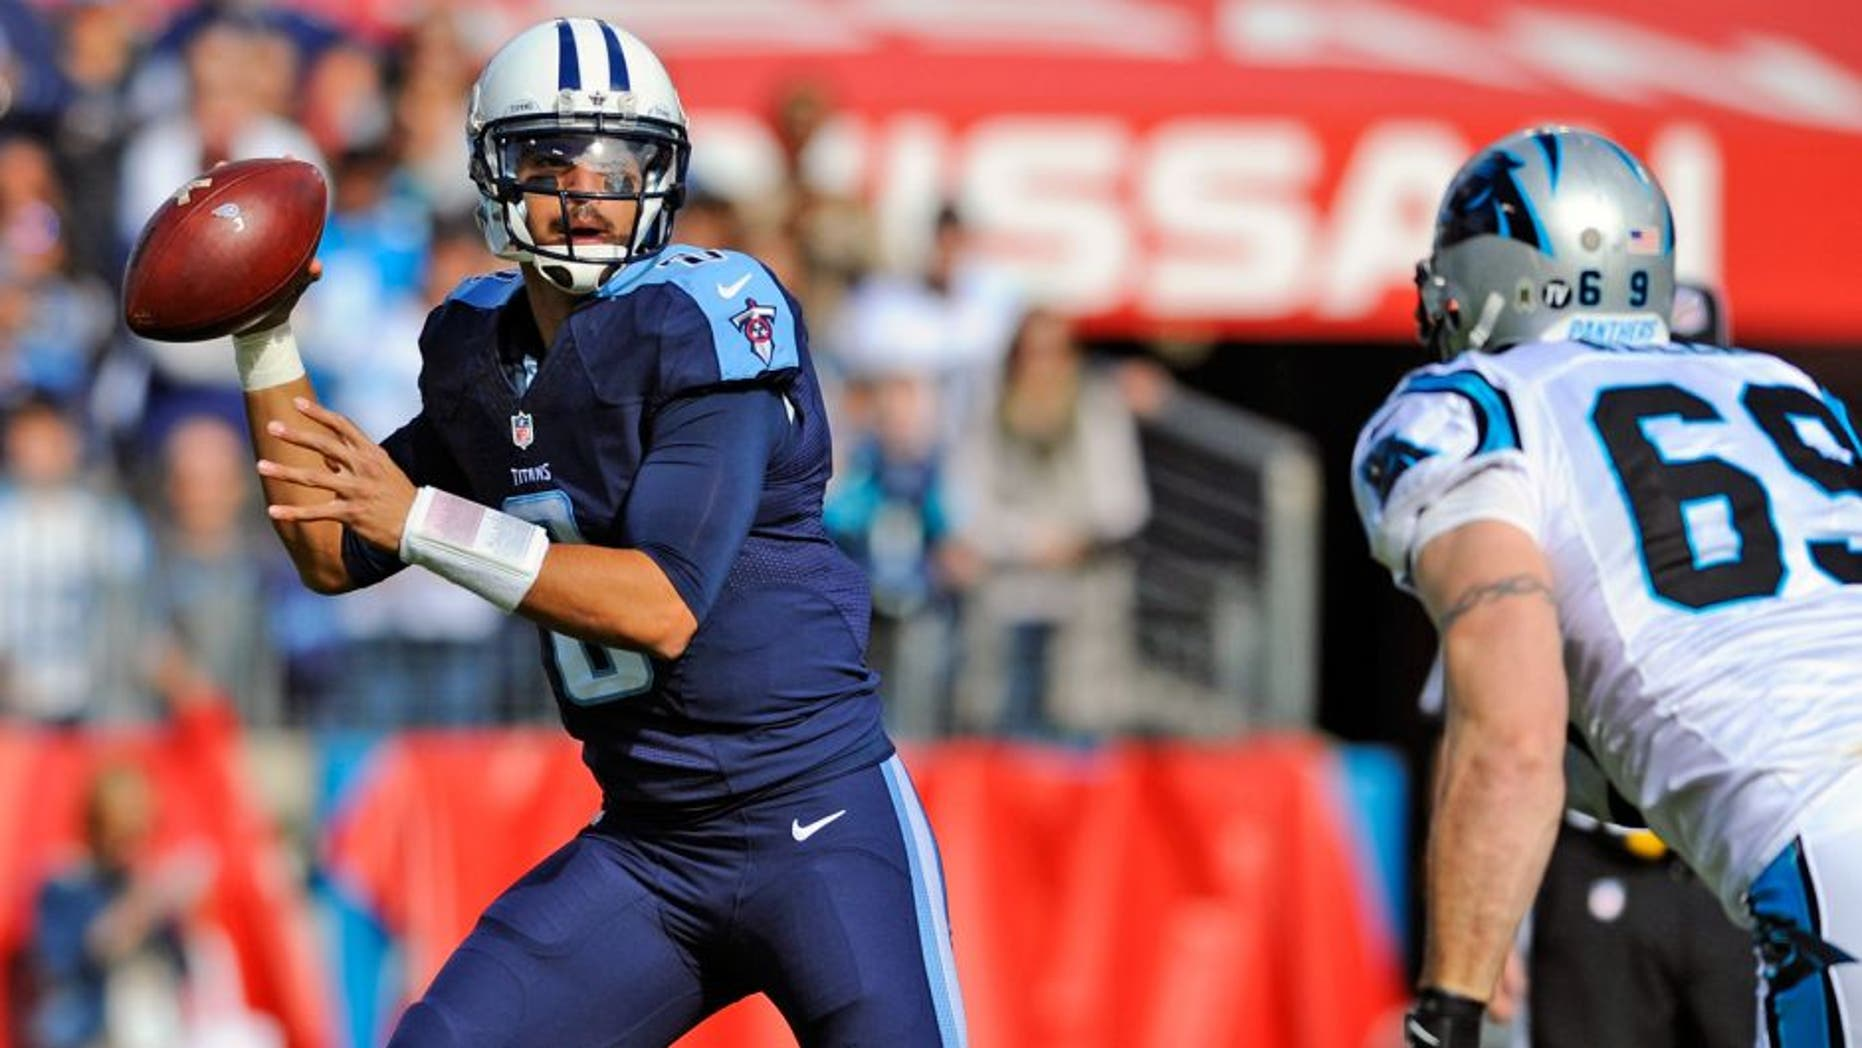 Nov 15, 2015; Nashville, TN, USA; Tennessee Titans quarterback Marcus Mariota (8) rolls out of the pocket chased by Carolina Panthers defensive end Jared Allen (69) during the first half at Nissan Stadium. Mandatory Credit: Christopher Hanewinckel-USA TODAY Sports